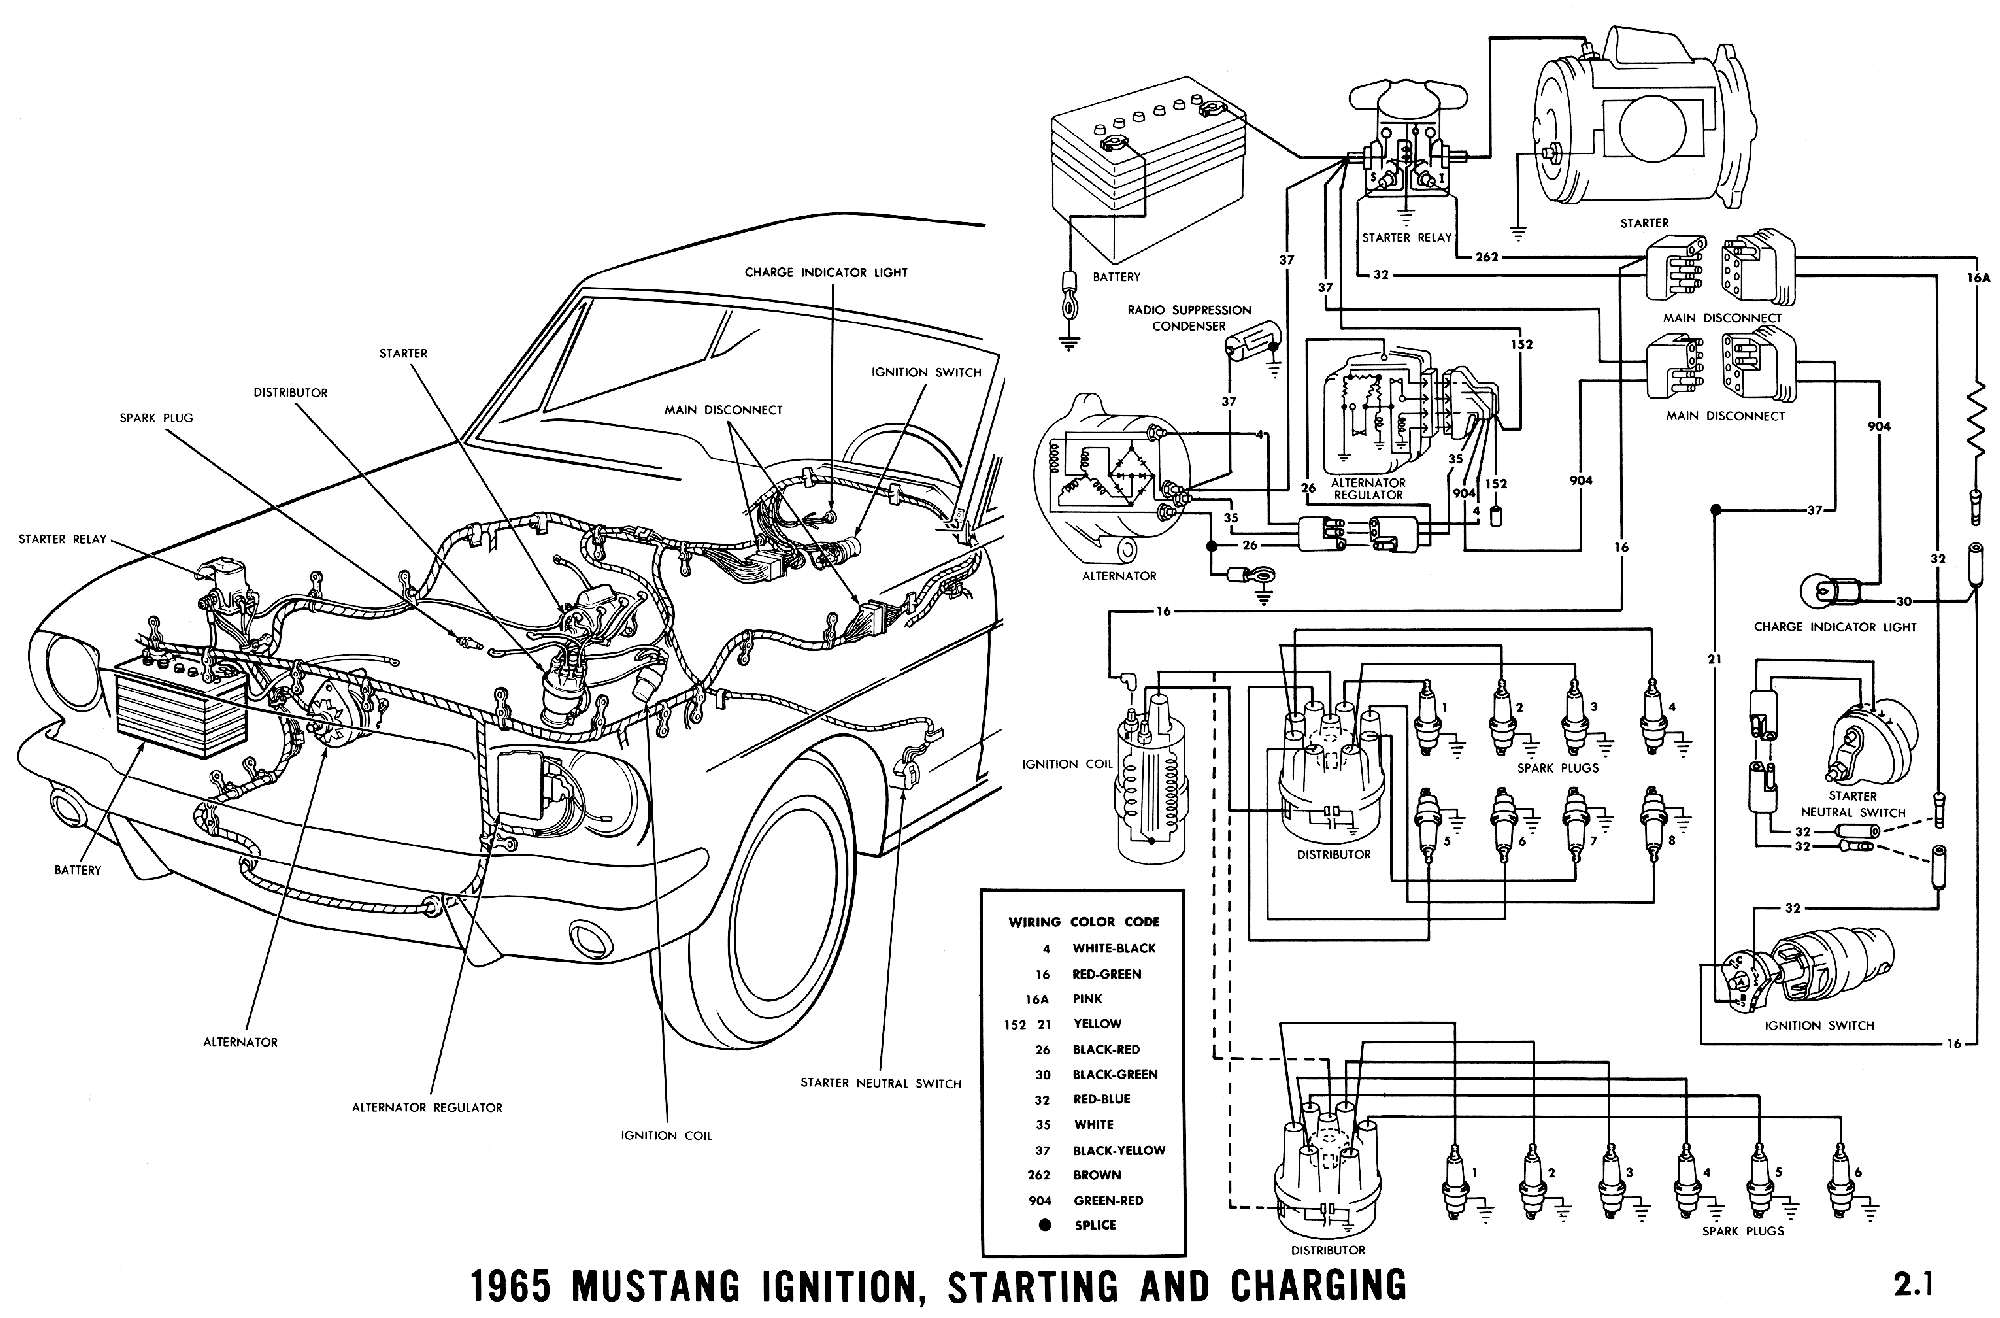 Jy Mcc also C furthermore F Fuse Diagram Ford Crown Victoria Box Schematics Optional Portrayal Likewise Vic furthermore Ford F Trailer Wiring Diagram Ford F Wiring Diagram Residential Electrical Symbols U Rh Bookmyad Co Ford Trailer Brake Wiring Diagram Ford Trailer Hitch Wiring Diagram further Fyuvkbvowrcteecr. on 1997 ford f 150 wiring schematics